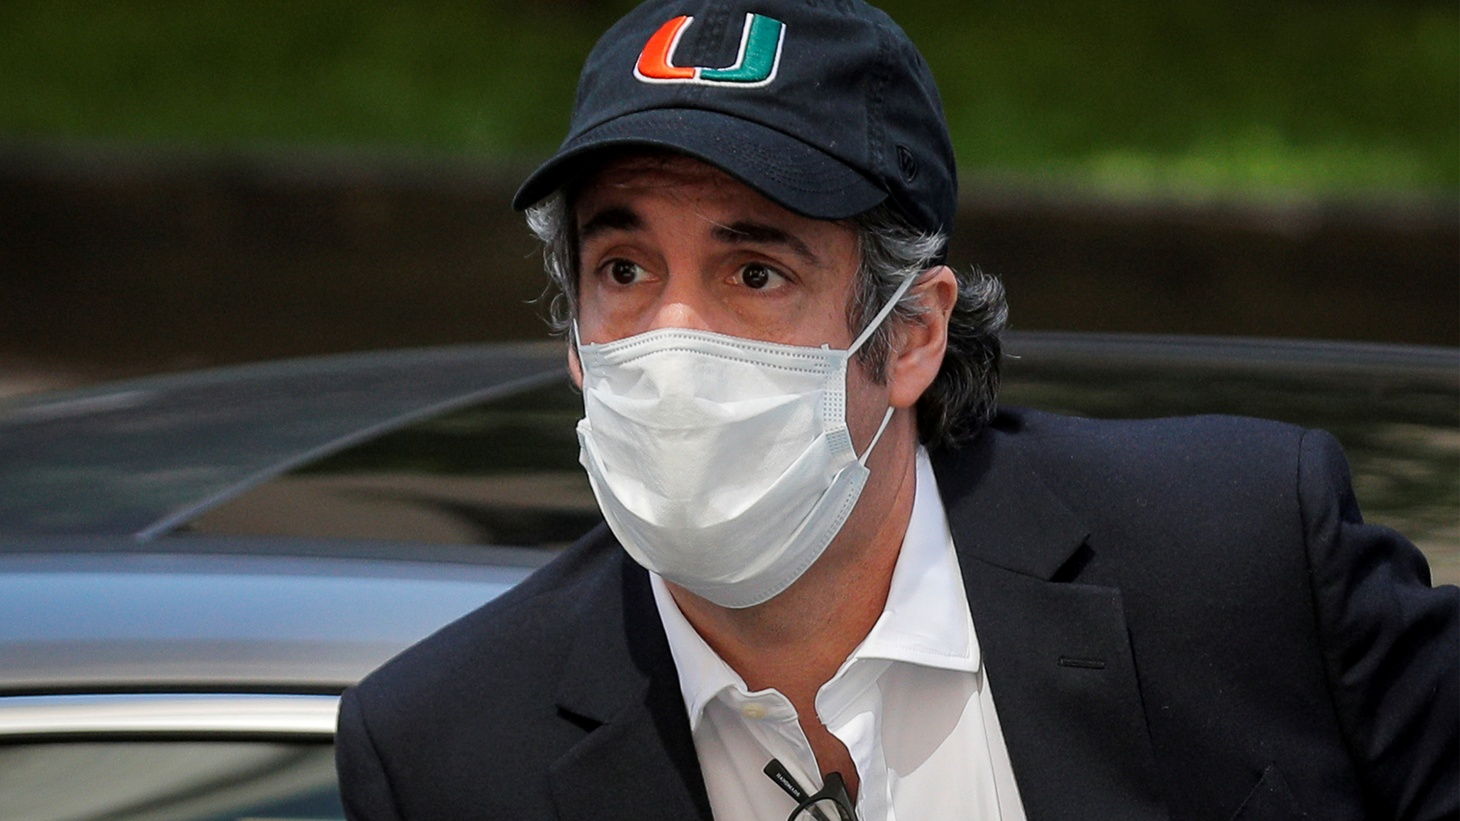 Michael Cohen, the former lawyer for U.S. President Donald Trump, arrives back at home after being released from prison during the outbreak of the coronavirus disease (COVID-19) in New York City, New York, U.S., May 21, 2020.